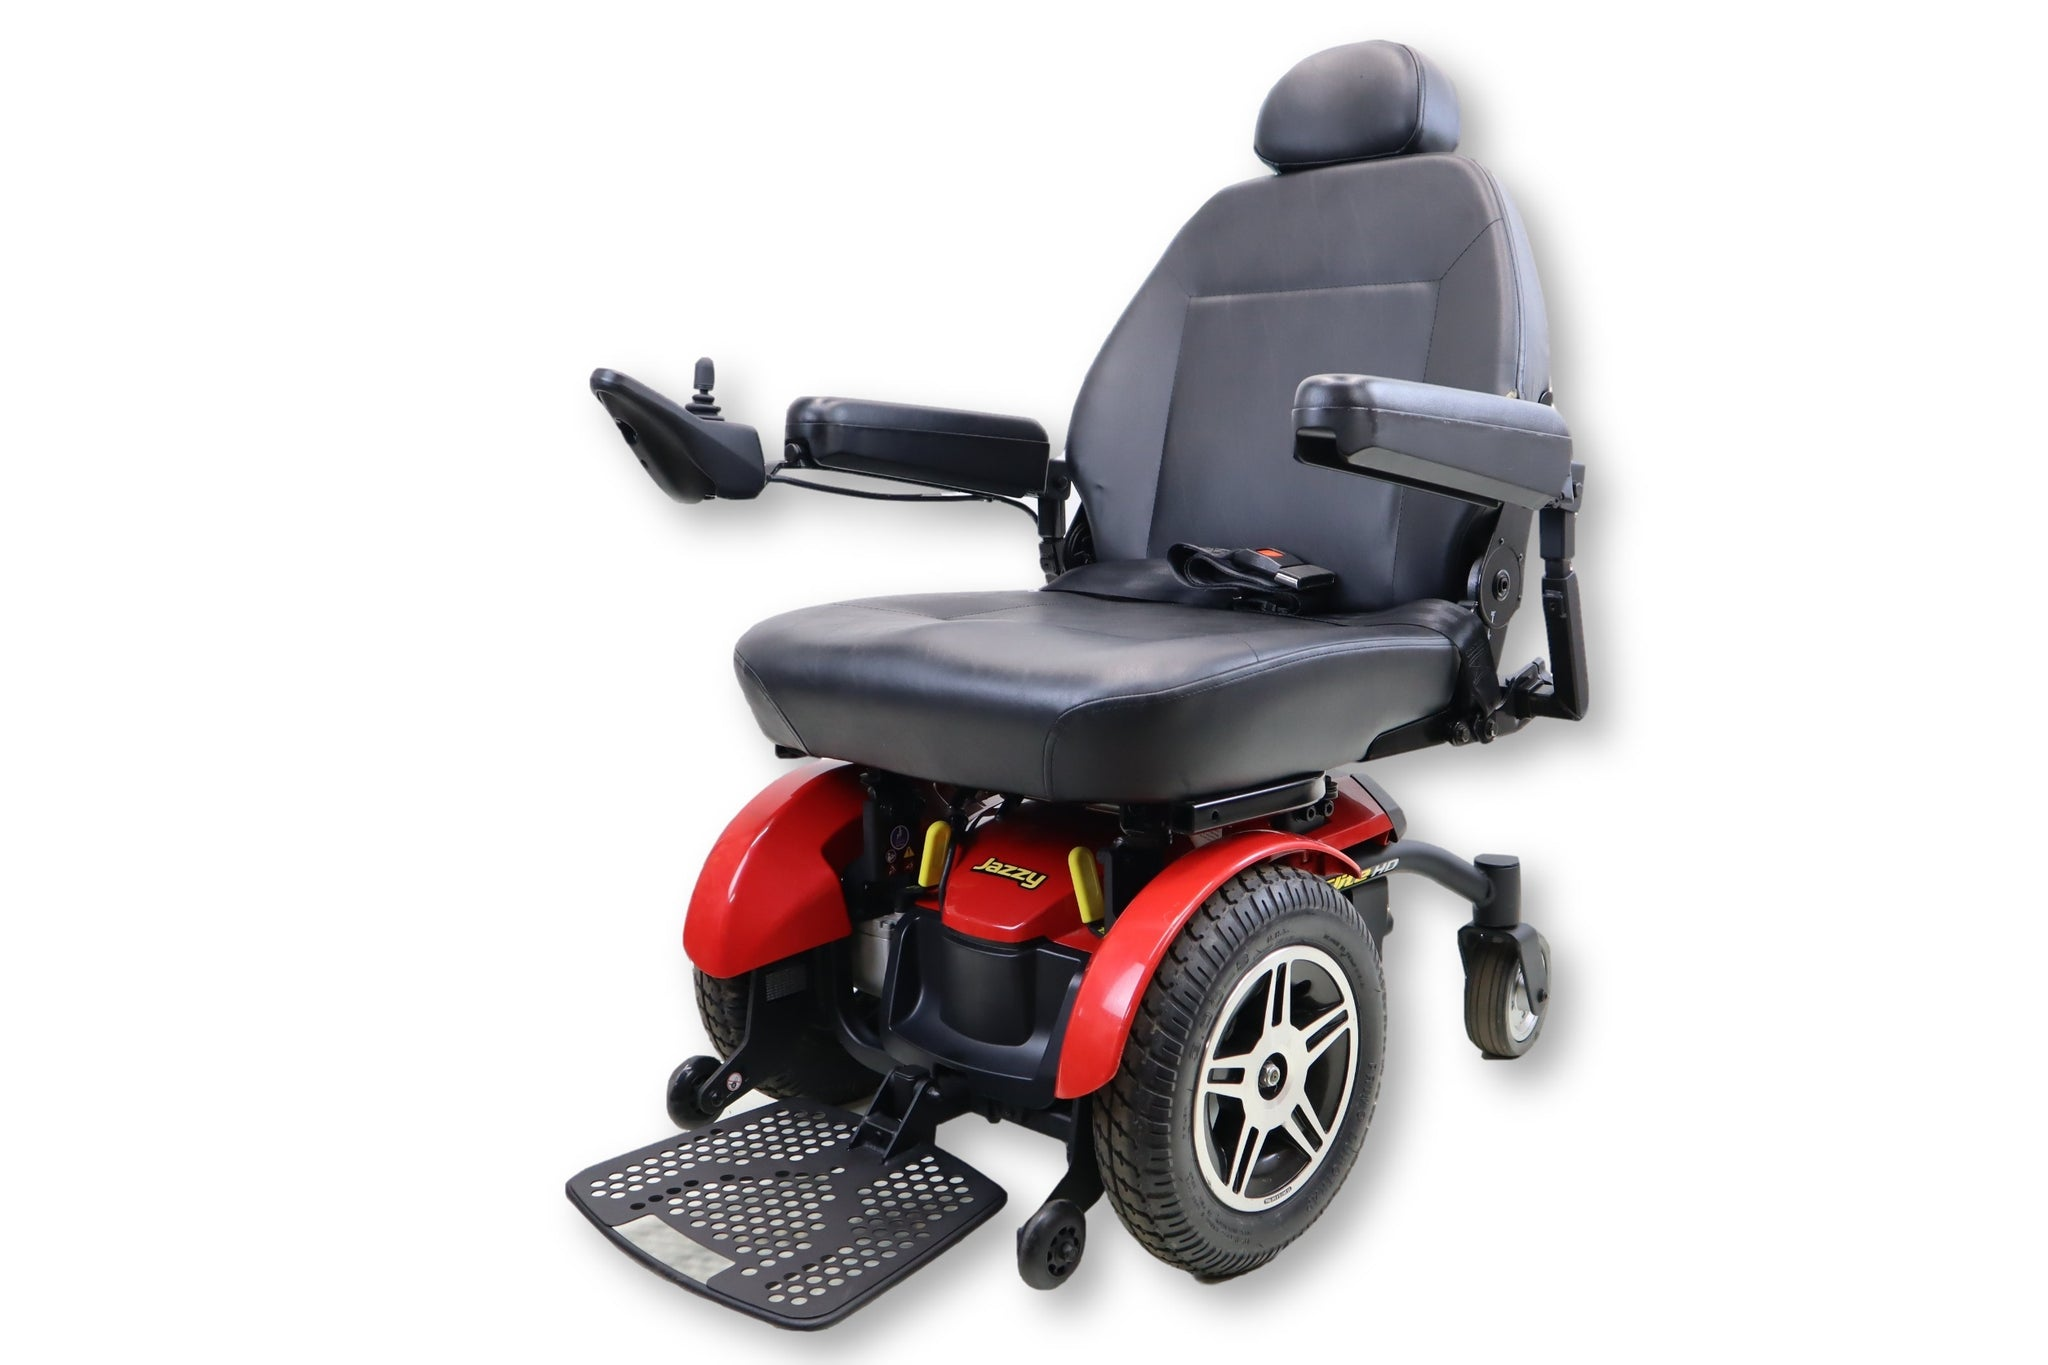 Jazzy Elite HD Electric Wheelchair | Bariatric | 450 lbs. Weight Capacity